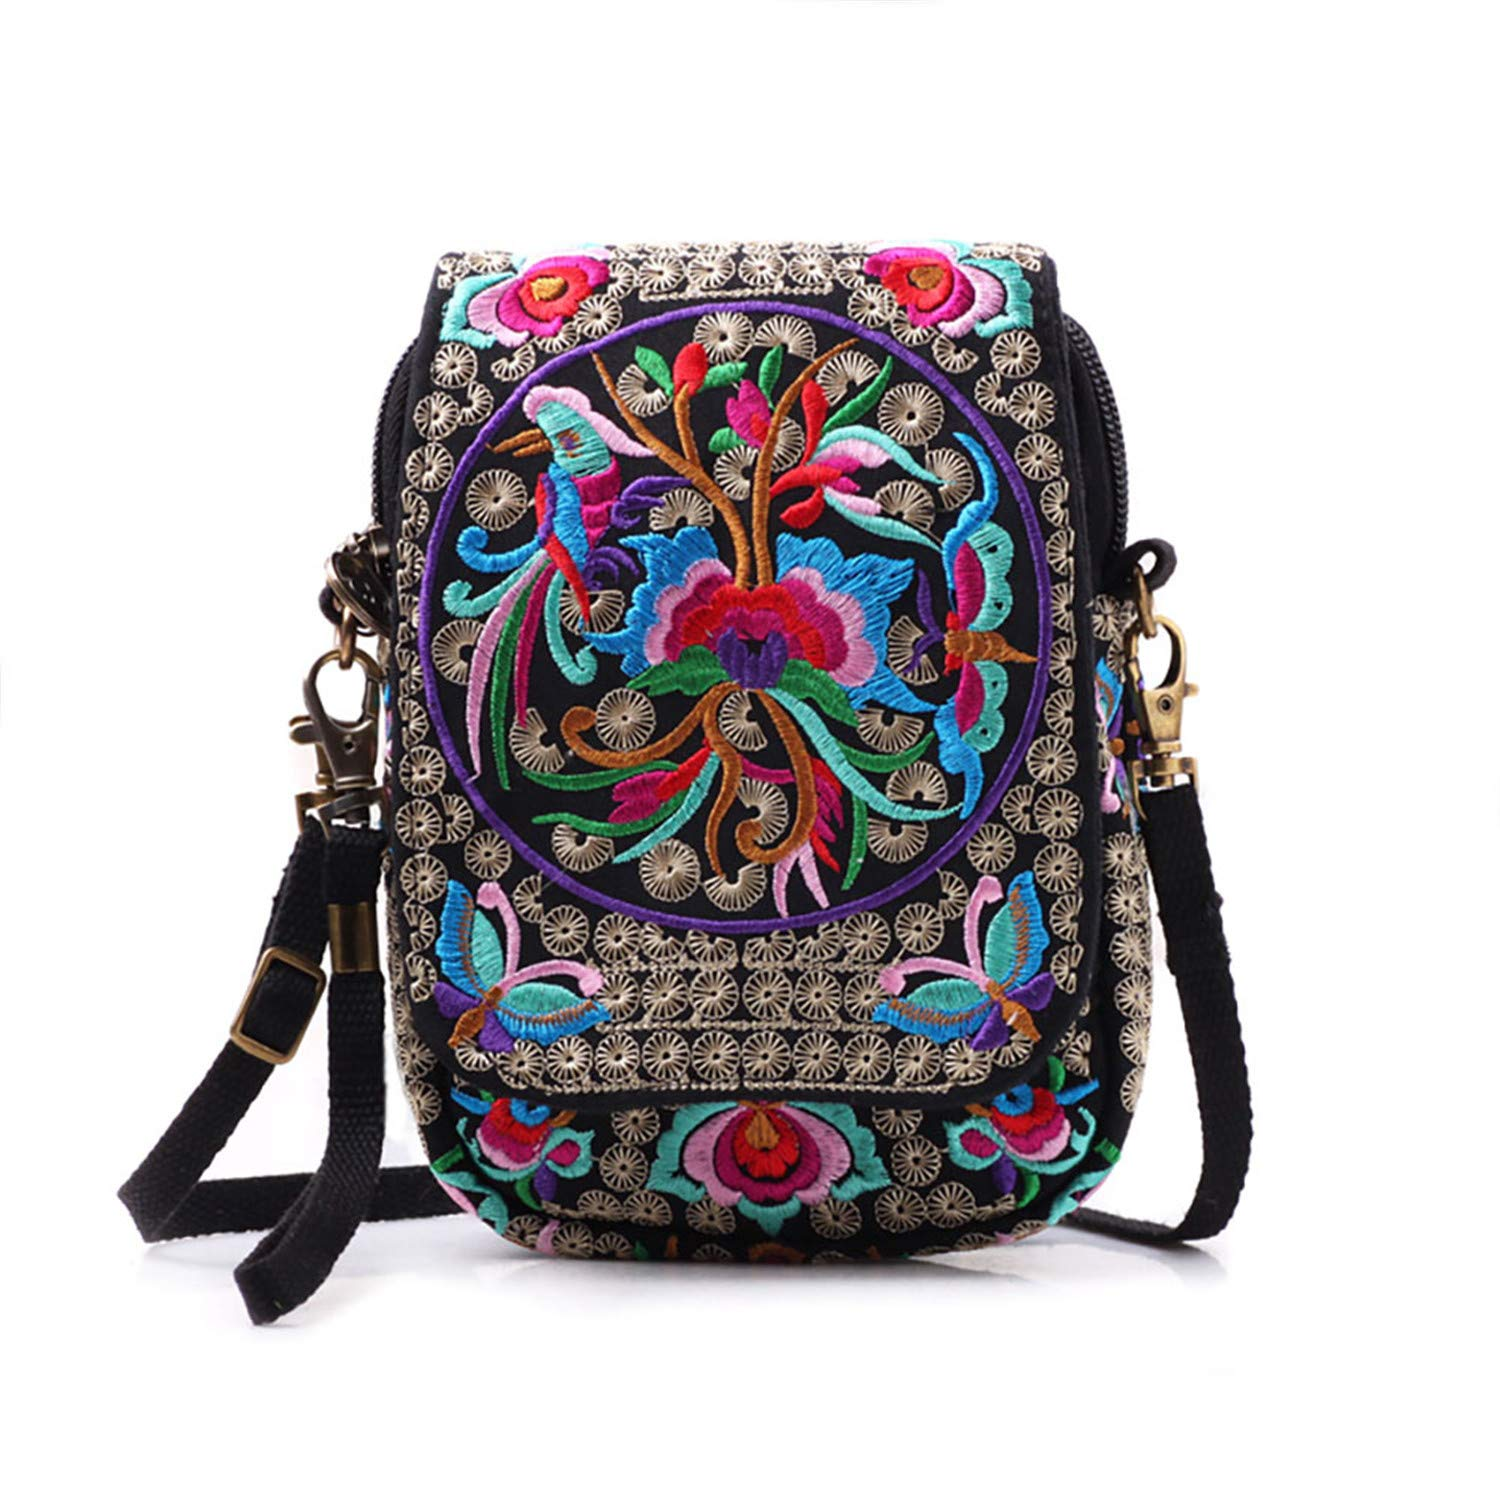 seeknfind 2 PACK Embroidery Mini Crossbody Bag Cellphone Pouch Cell Phone Purse Wallet for Women Girls